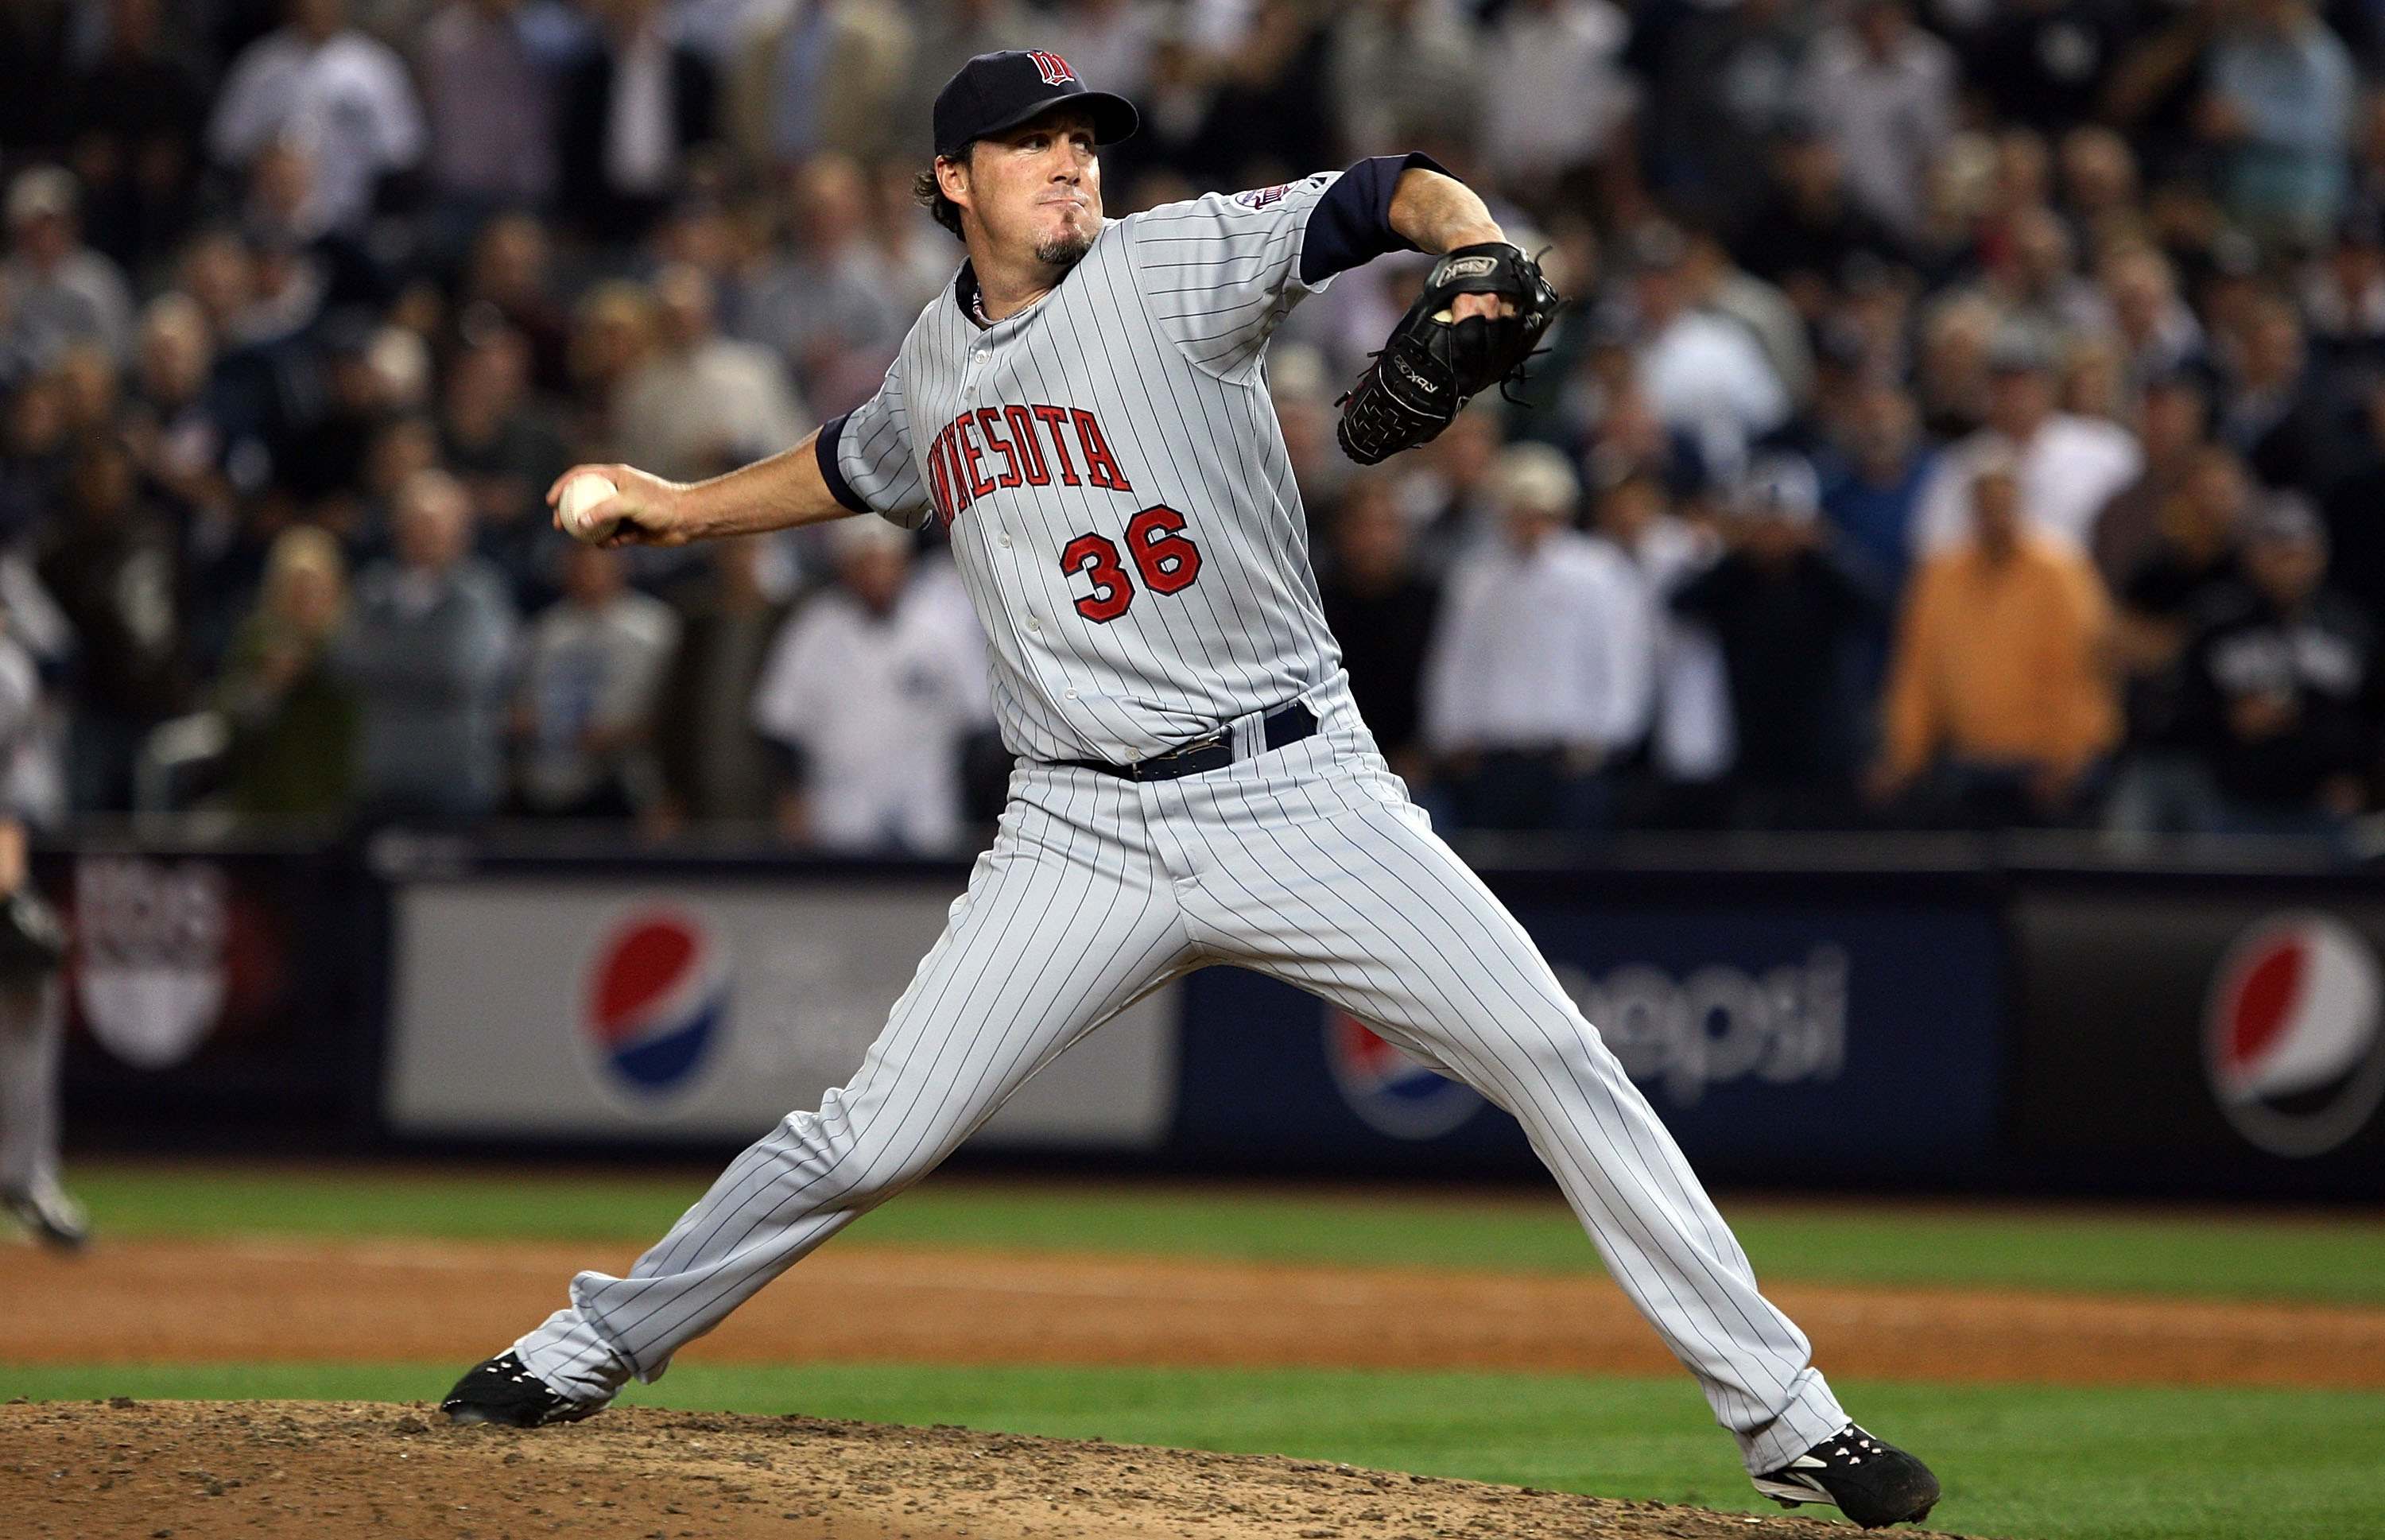 NEW YORK - OCTOBER 09: Joe Nathan #36 of the Minnesota Twins pitches against the New York Yankees in Game Two of the ALDS during the 2009 MLB Playoffs at Yankee Stadium on October 9, 2009 in the Bronx borough of New York City. (Photo by Jim McIsaac/Getty